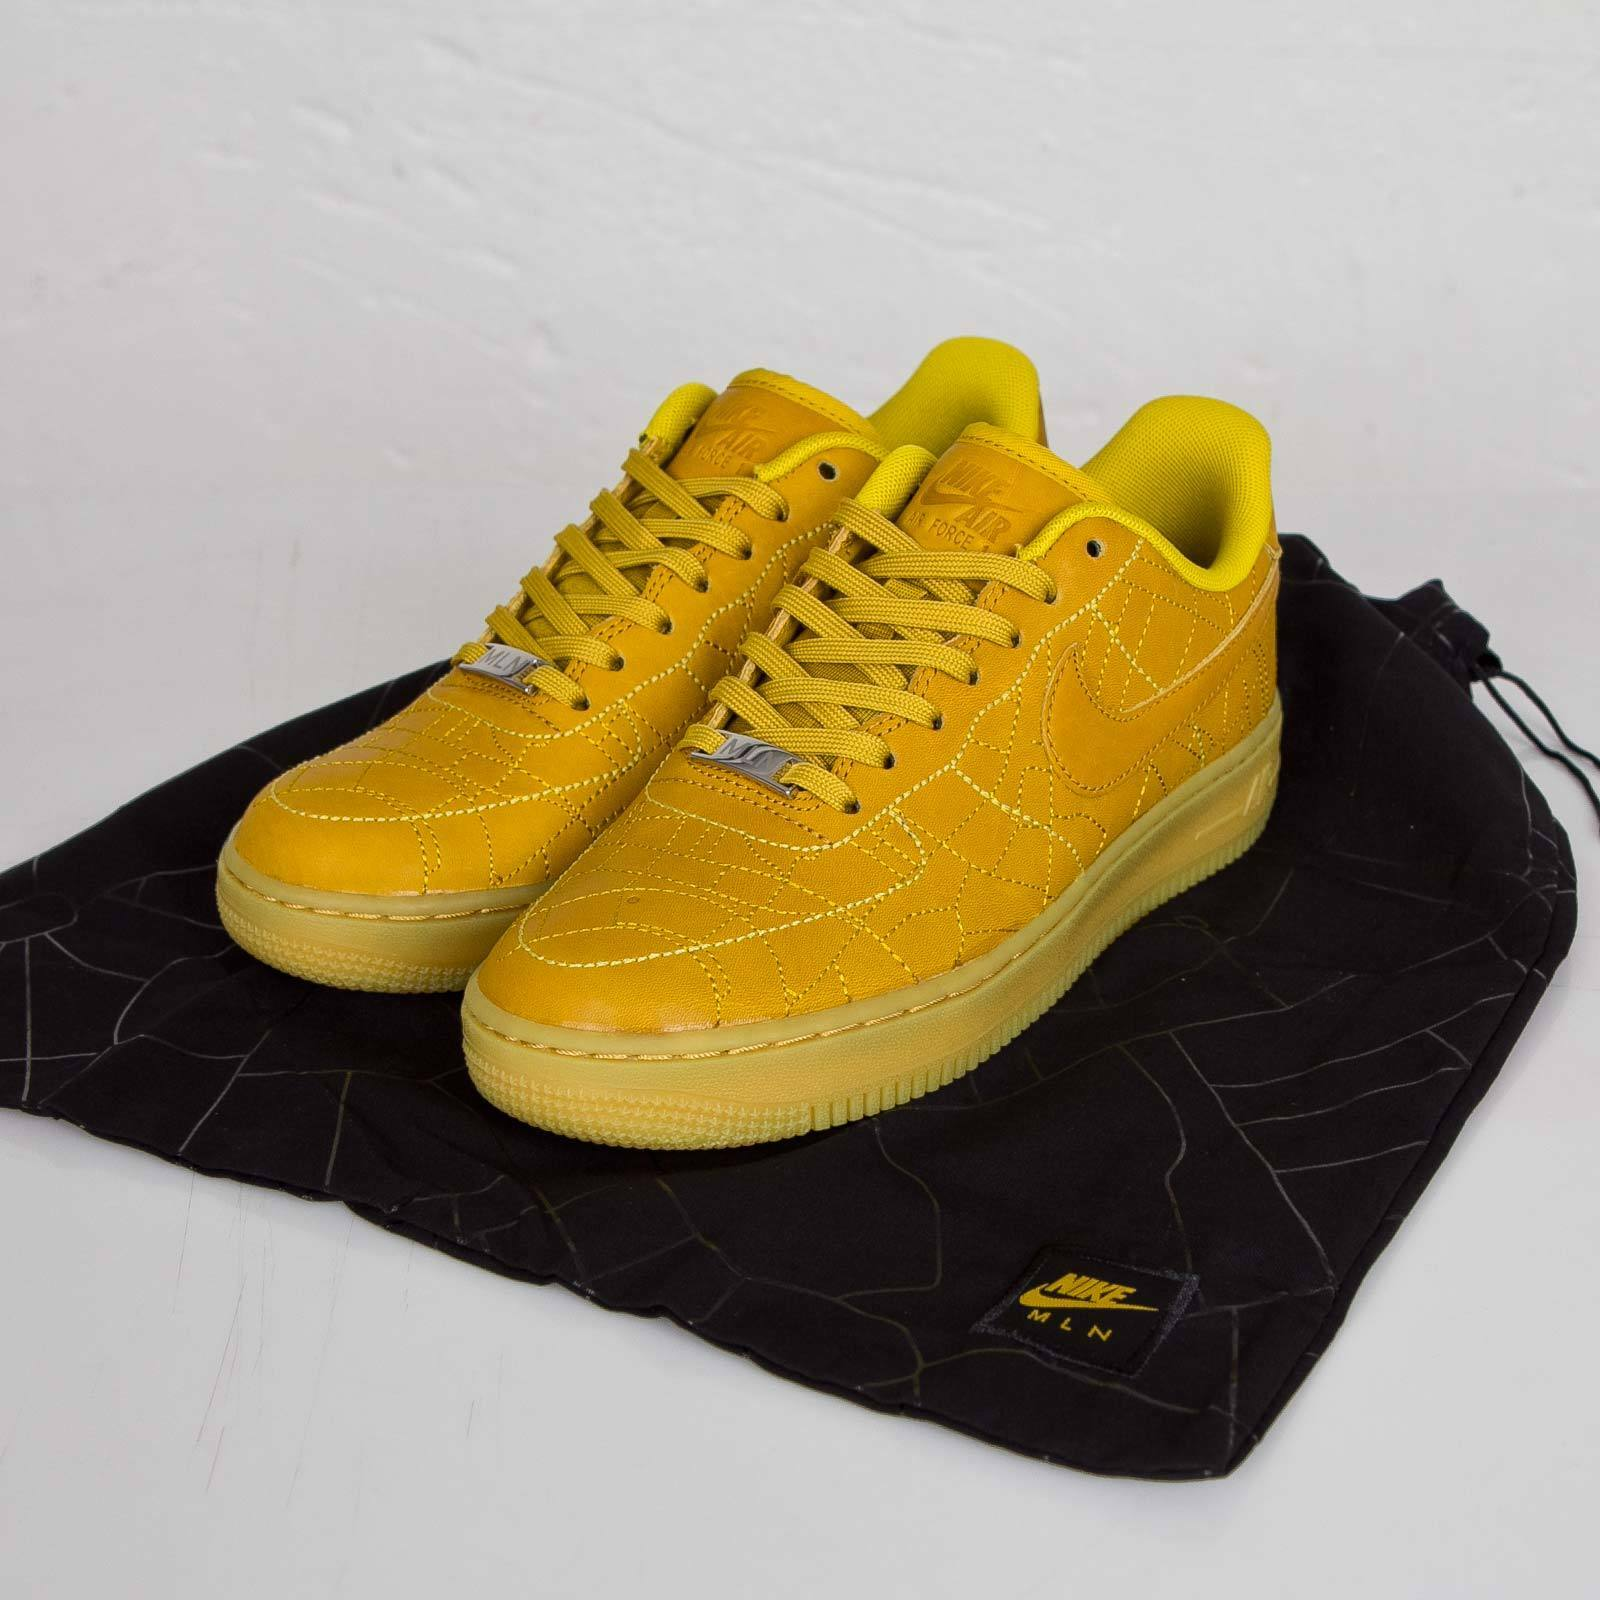 Nike WOMEN'S Air Force 1 '07 FW QS MILAN CITY PACK SIZE 5.5 BRAND NEW